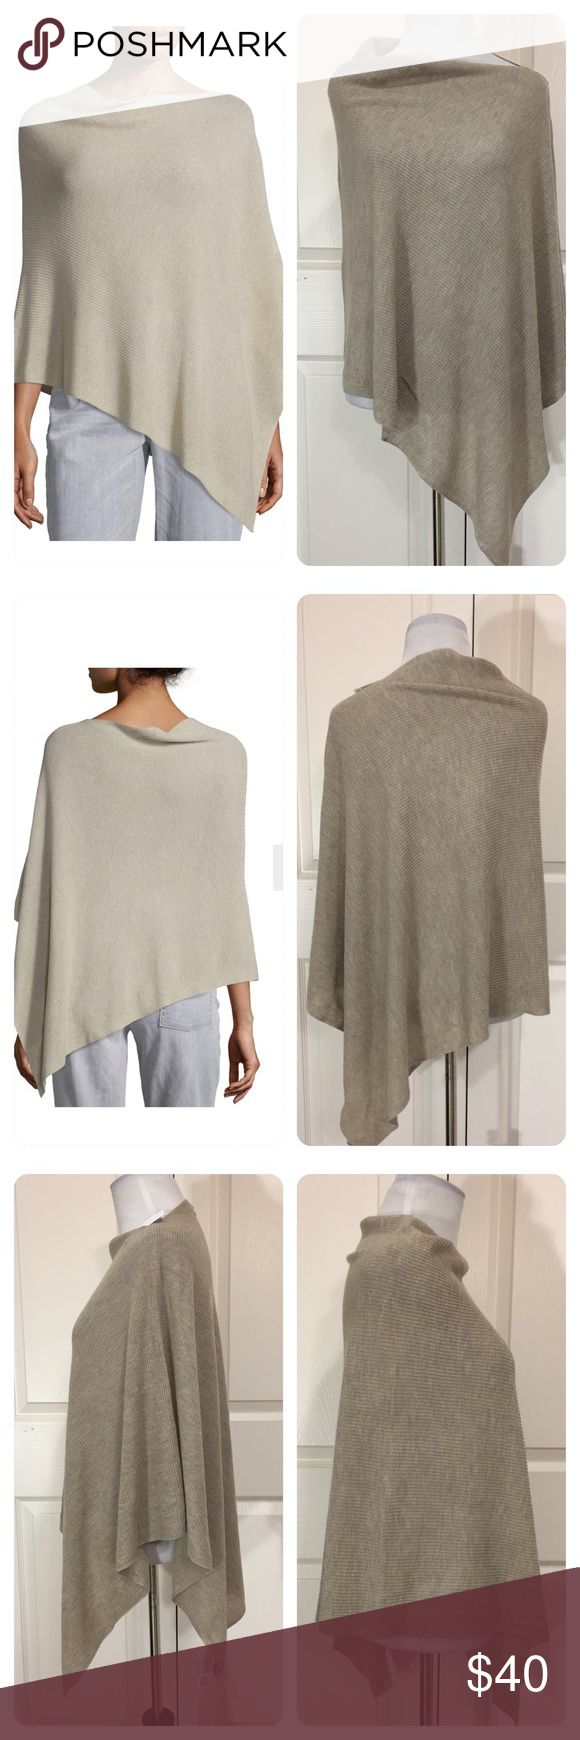 """NEw! Eileen Fisher Asymmetrical Poncho New with tags from a secondary market store!  Eileen Fisher 'Maple Oat' Tencel/Merino Wool Asymmetrical Poncho One Size  Retails for $158  Poncho Features          Asymmetrical hem updates rib-knit poncho          Cowlneck          Three-quarter poncho sleeves          Asymmetrical hem          Pullover style          About 35"""" from shoulder to hem at longest point          Tencel/merino wool Sized as """"one size"""". Will mark a Medium. Eileen Fisher…"""